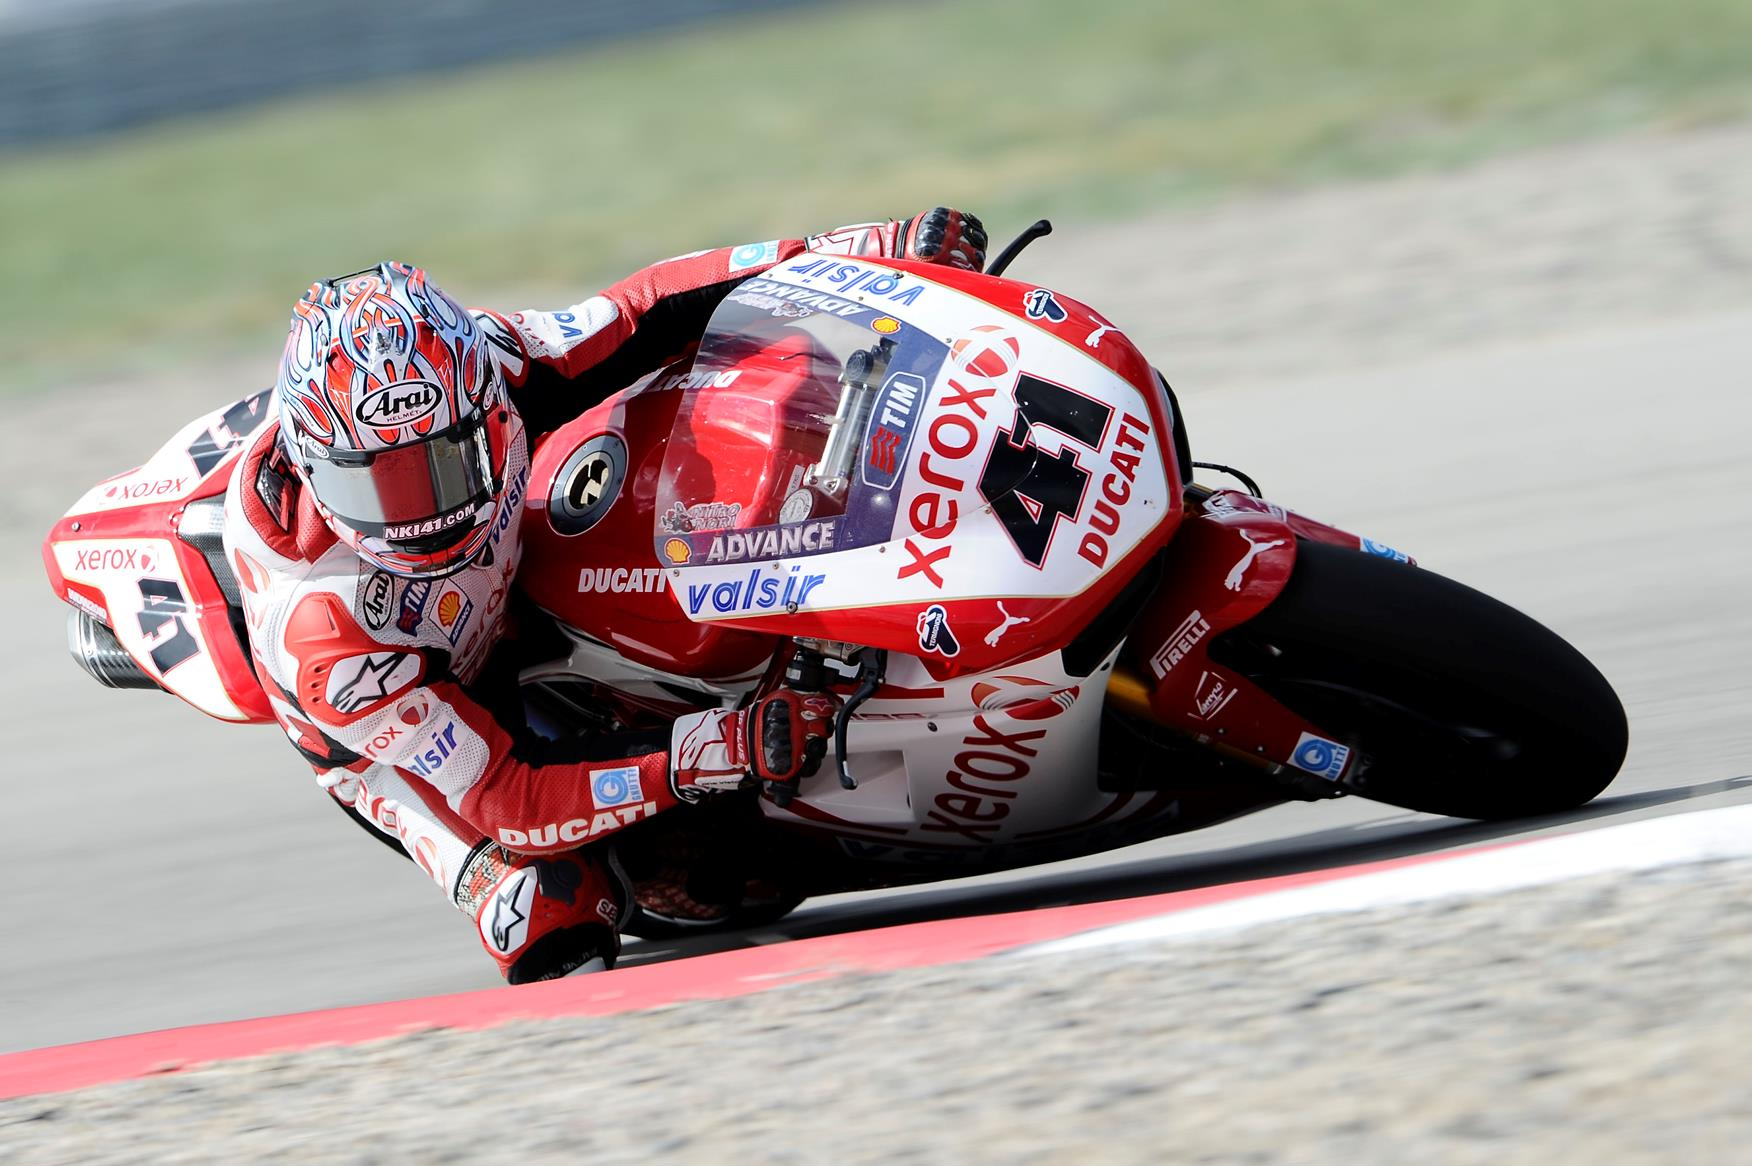 WSB Miller: Haga leads the way in morning warm-up | MCN